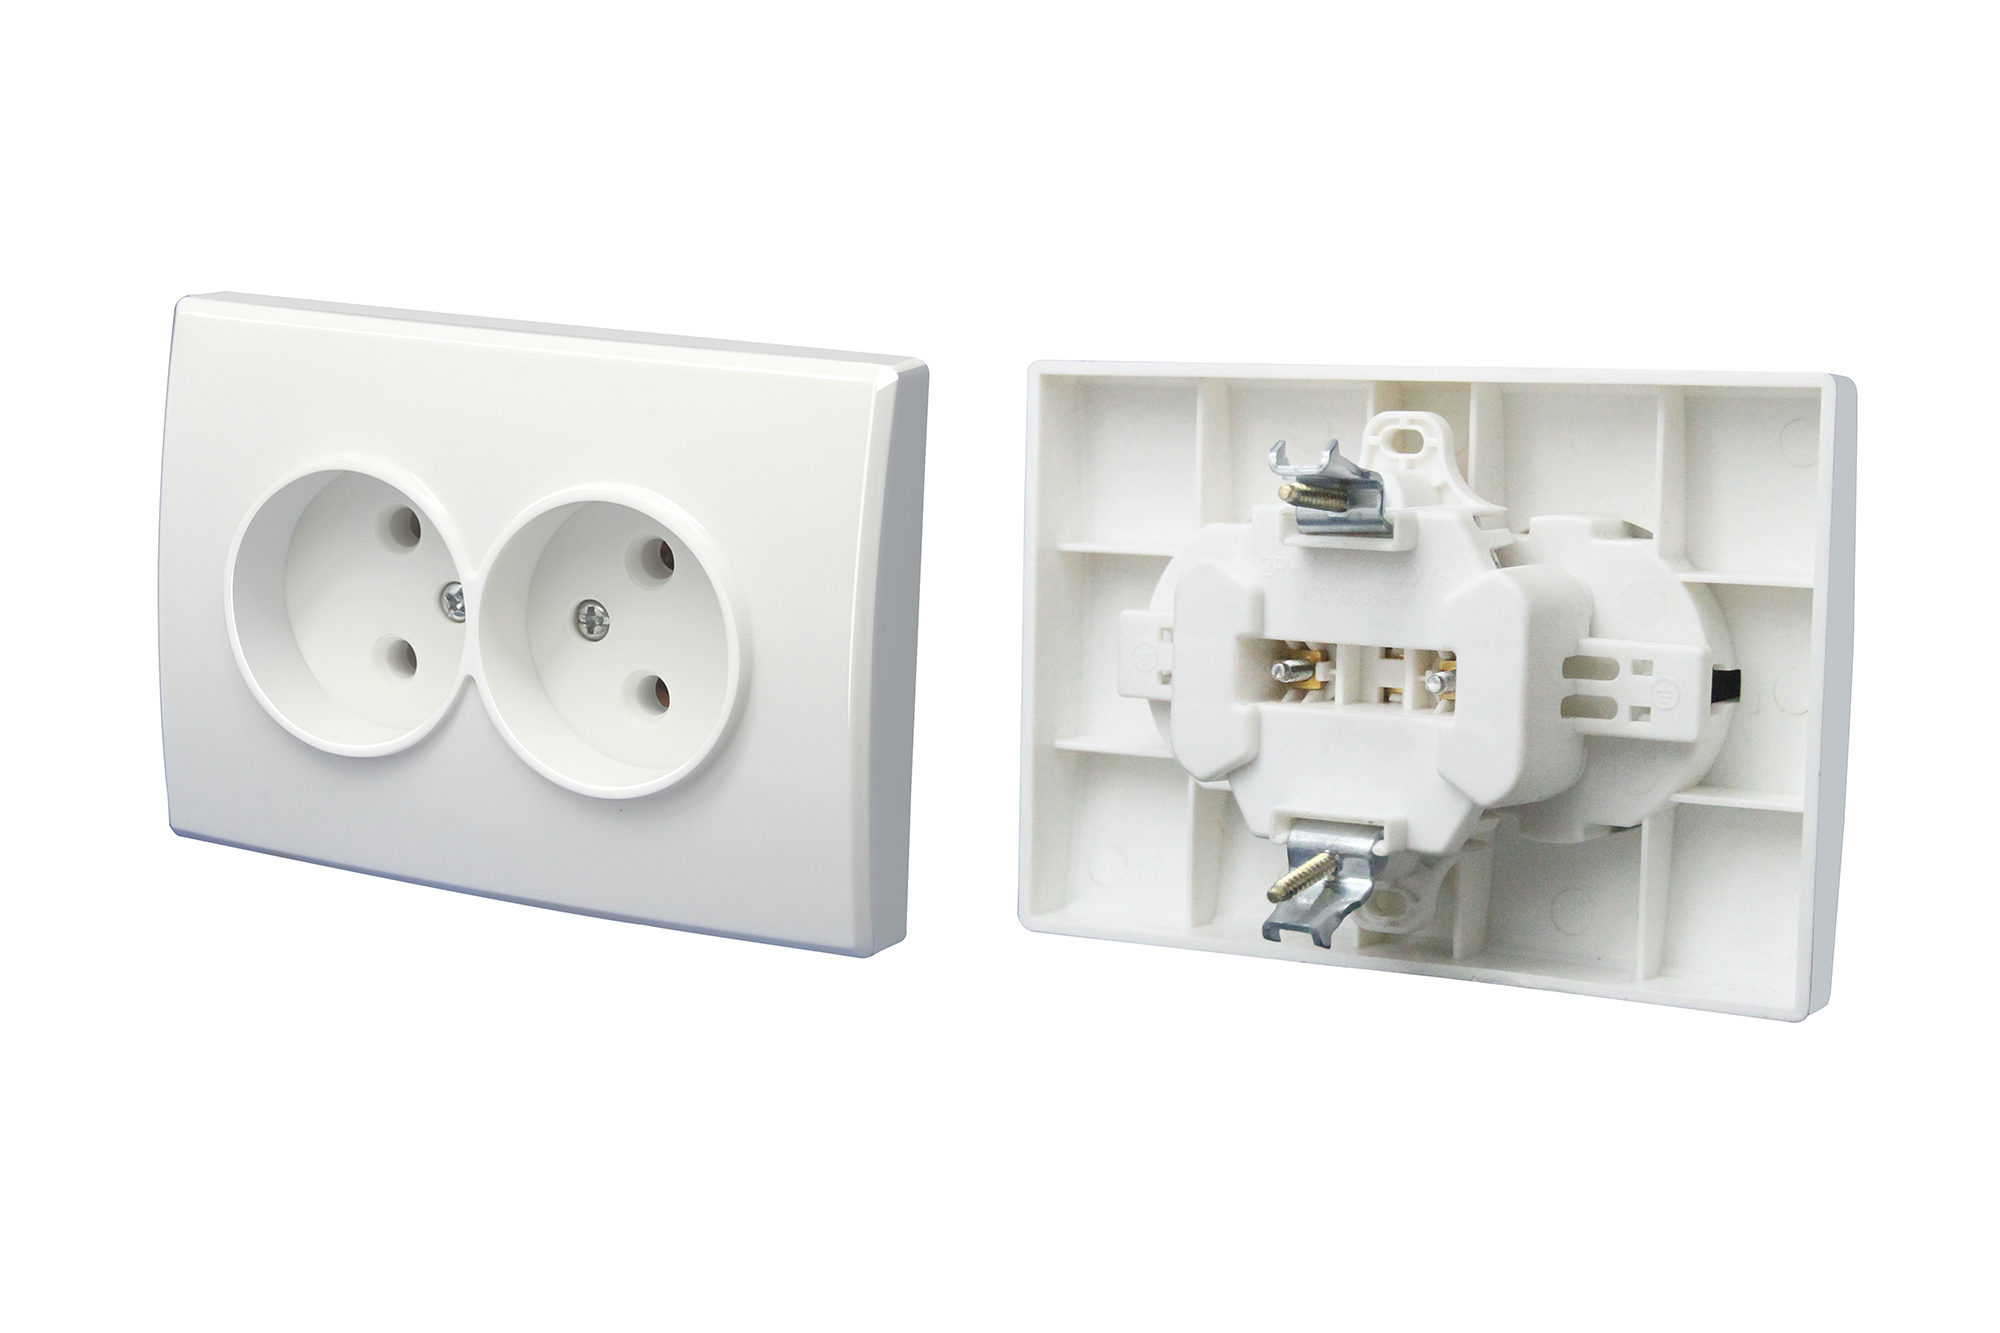 Double Socket Outlet Without Earth